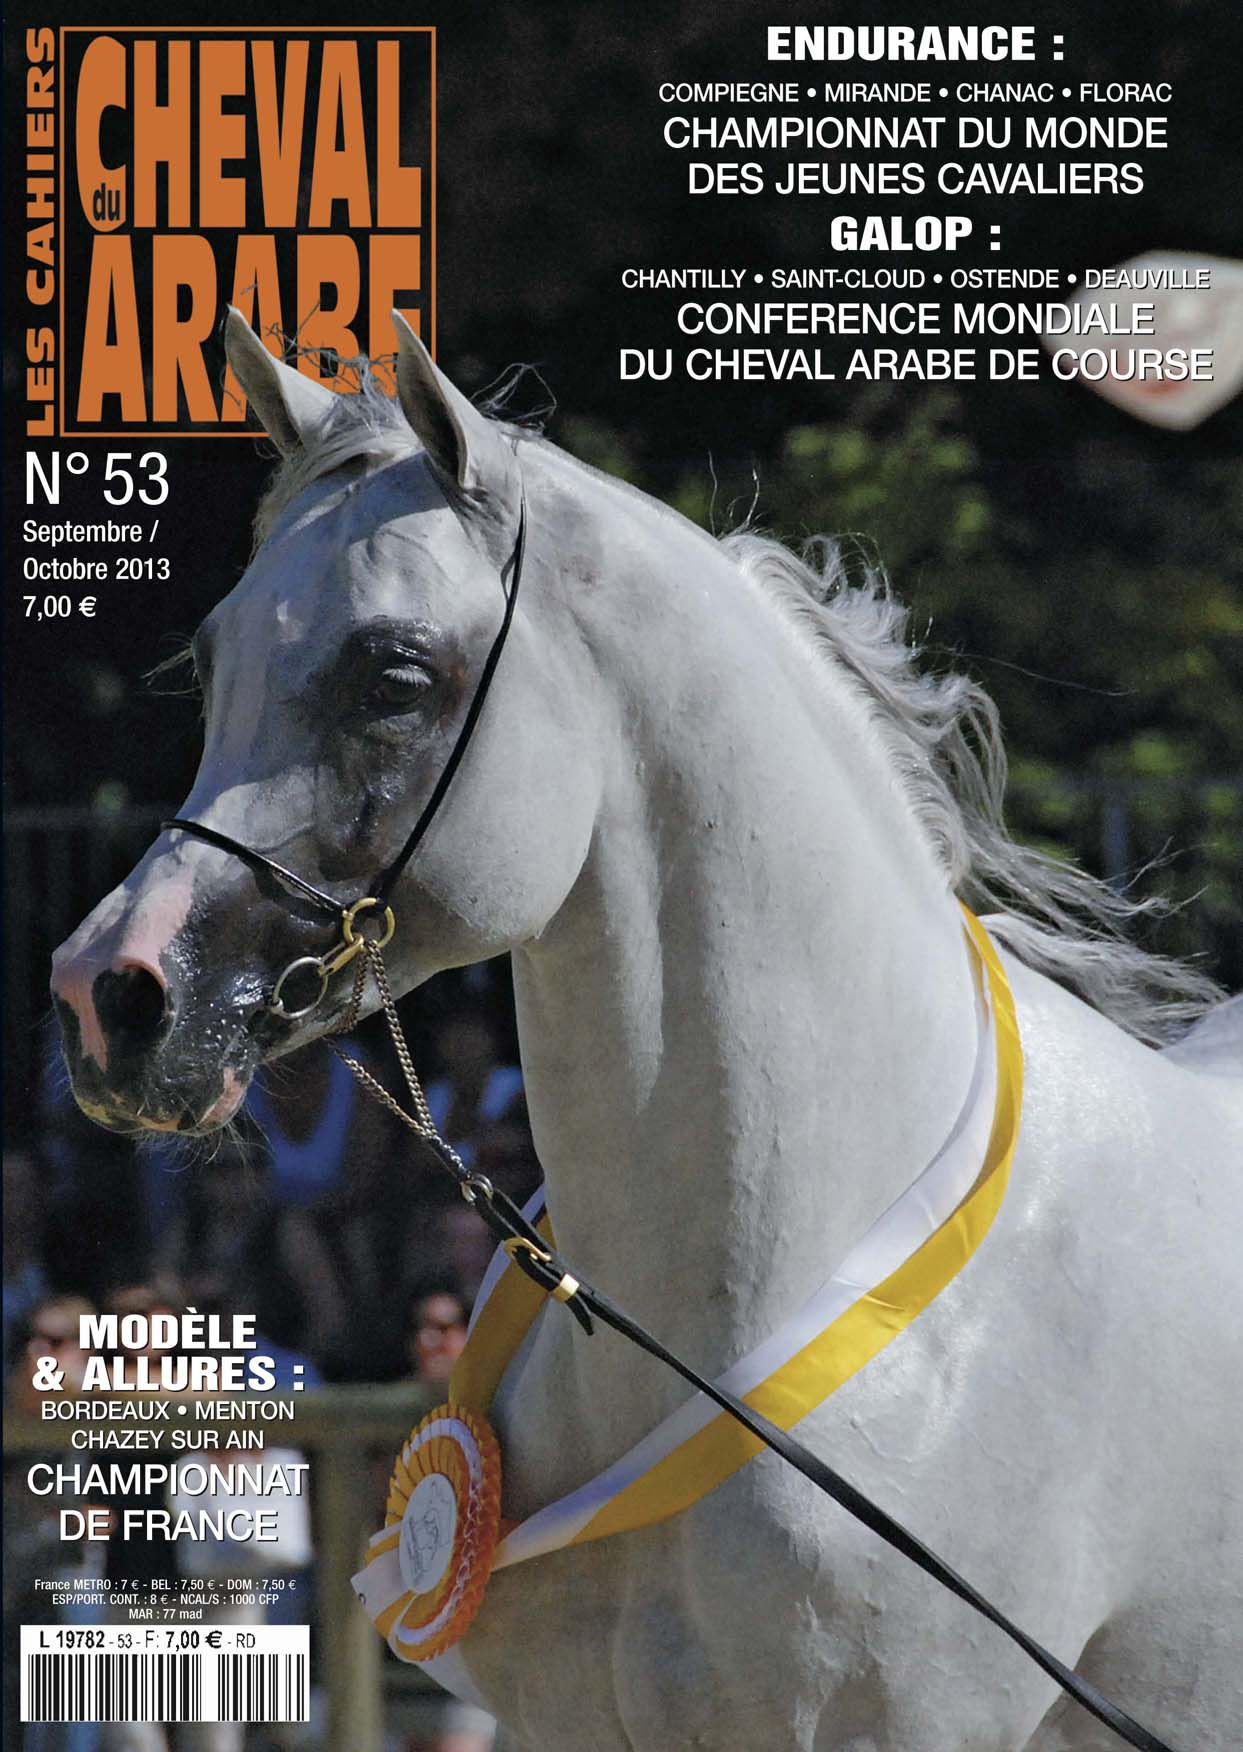 couverture_cahiers_du_cheval_arabe_n53